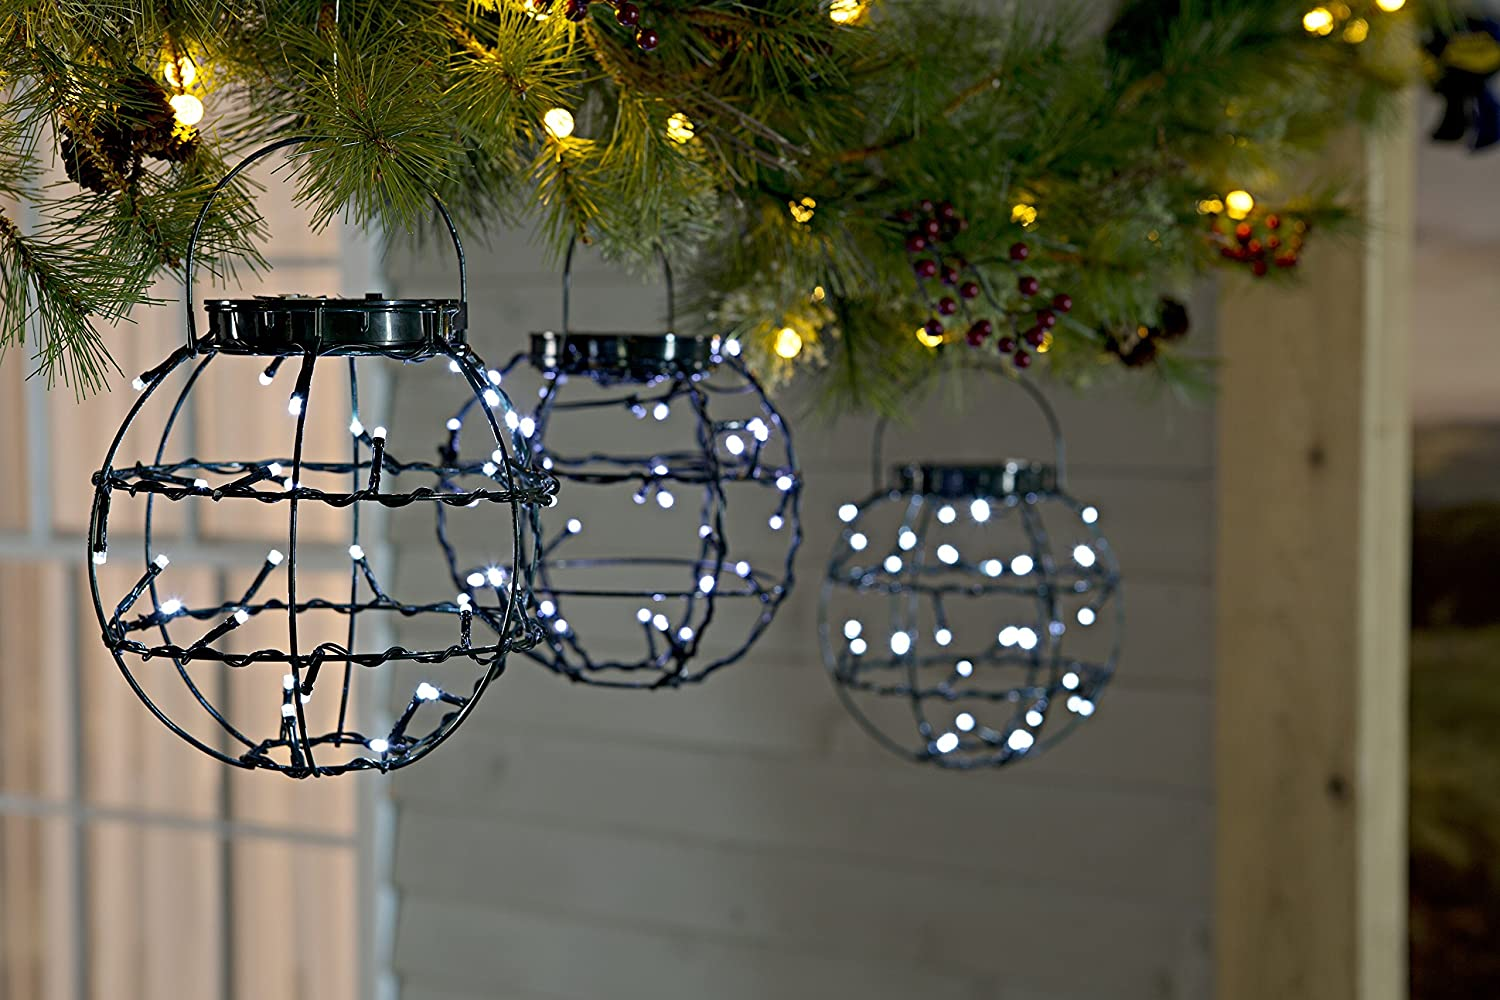 Plow & Hearth Set Of 3 Decorative Mini Solar Hanging Led. Easter Bunny Decor. Ikea Sliding Room Divider. Wedding Decorations Cheap. Western Wedding Decorations. Room Darkening Cellular Shades. Reclaimed Dining Room Tables. Dining Table Rooms To Go. Valentines Home Decor